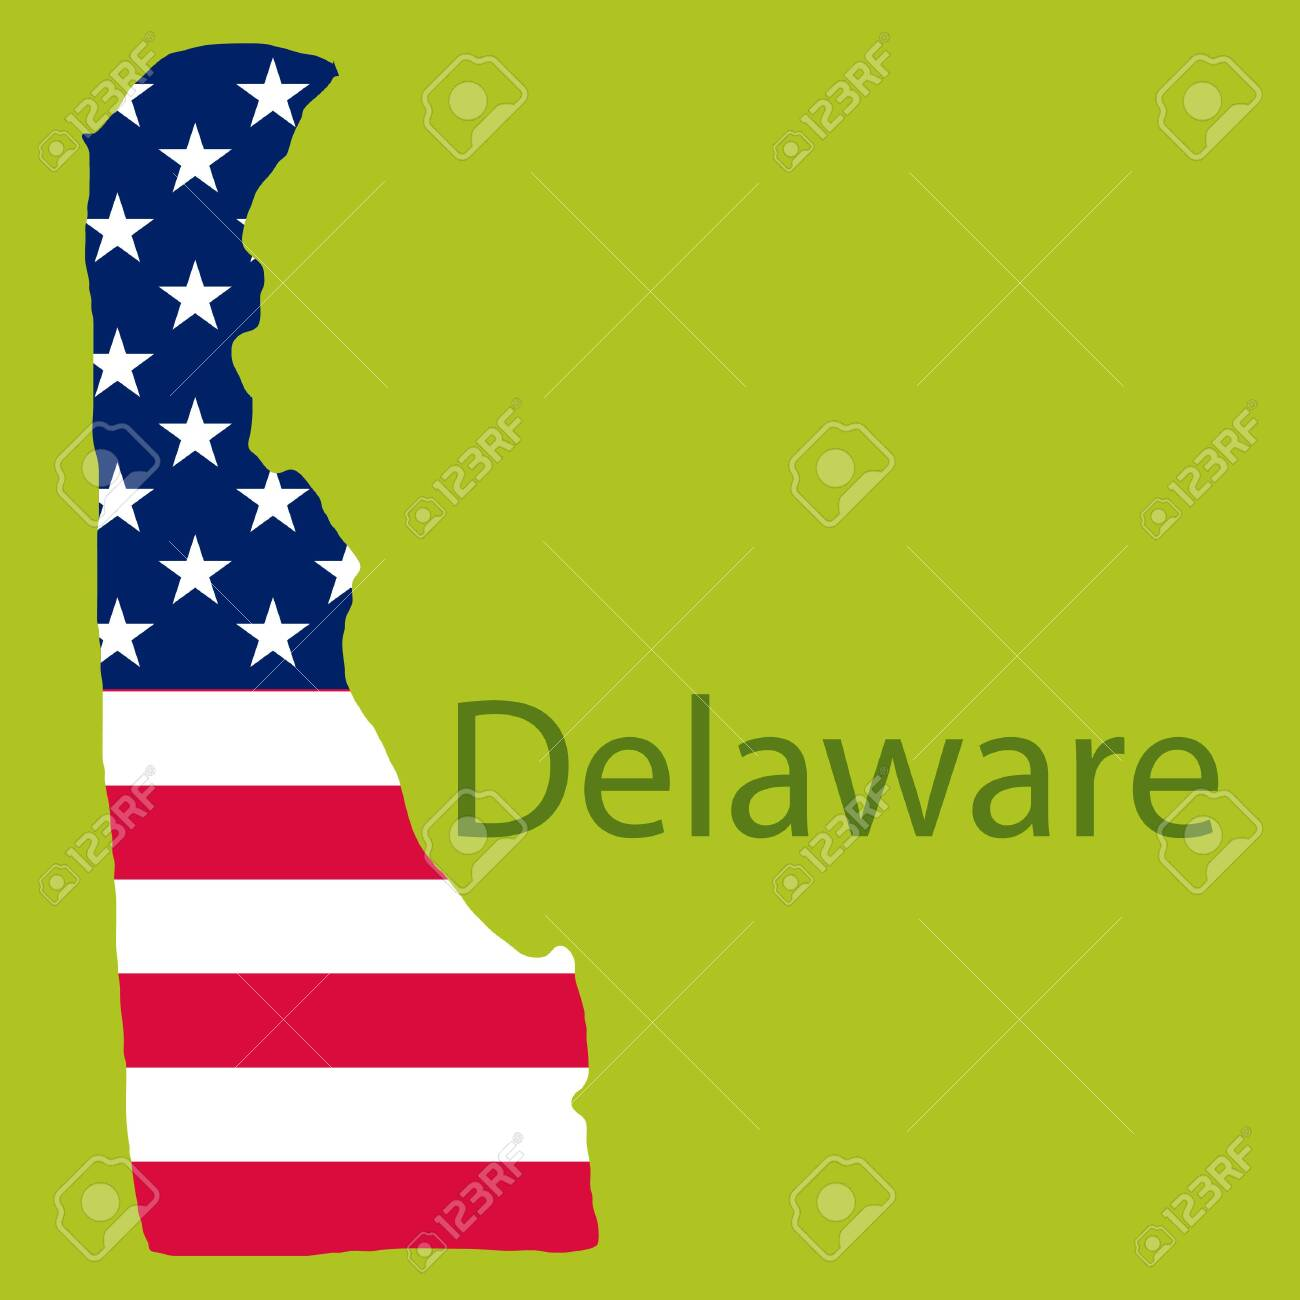 Delaware State Of America With Map Flag Print On Map Of Usa - Us-map-delaware-state